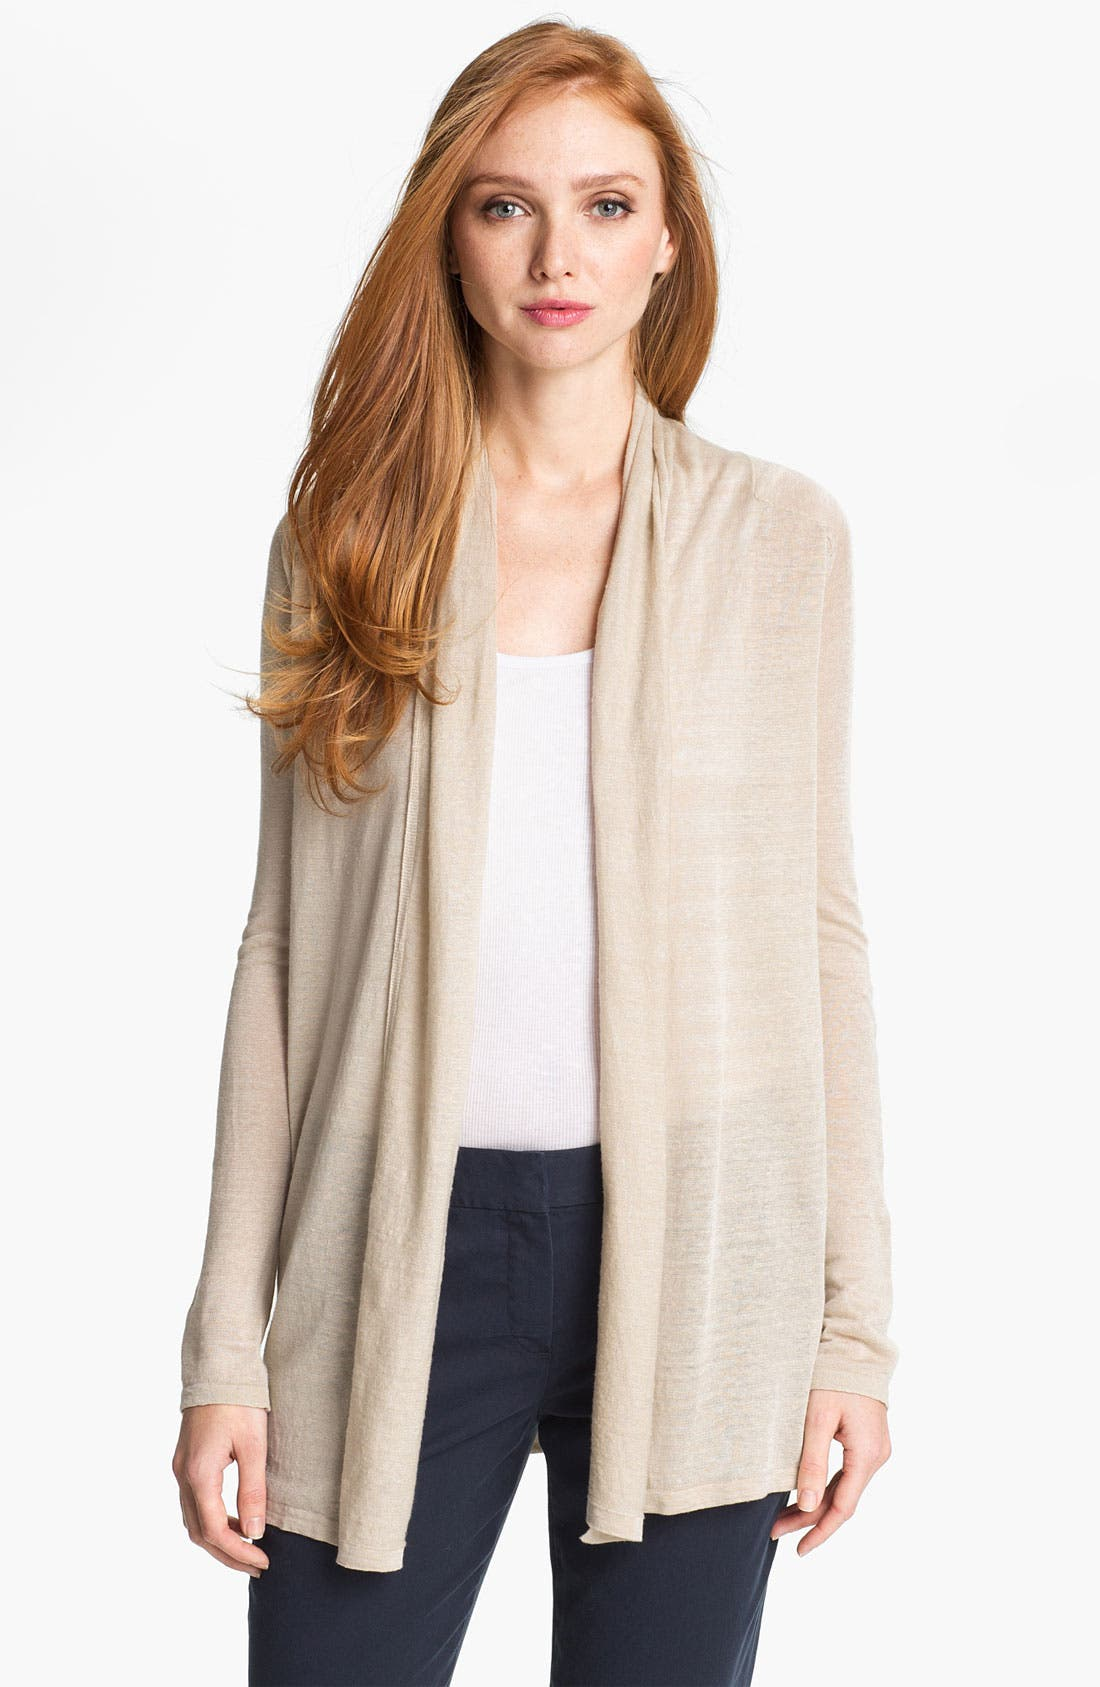 Alternate Image 1 Selected - Theory 'Ashtry C.' Open Cardigan